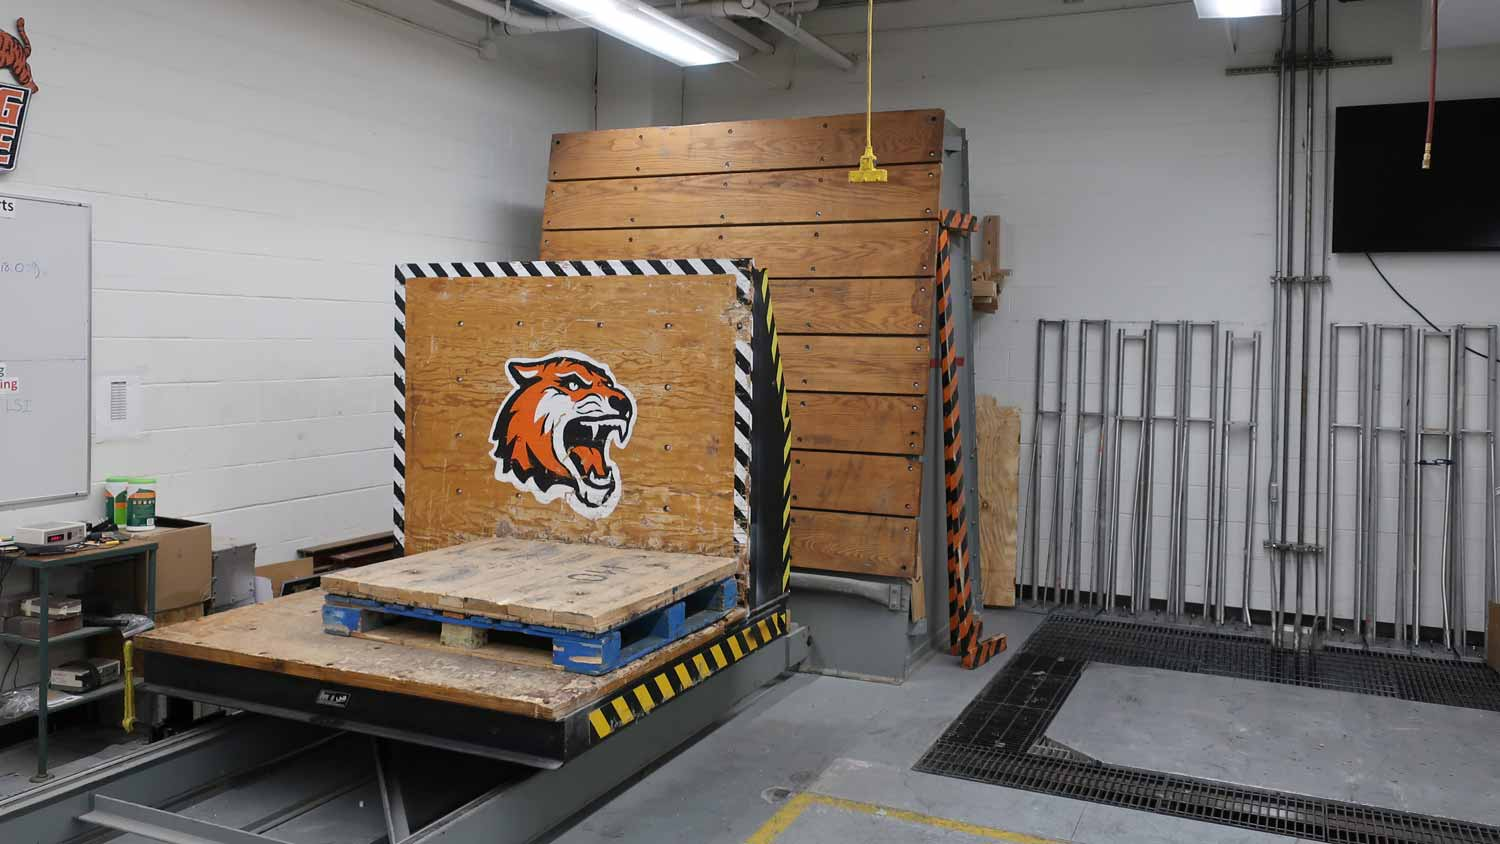 Lab with a wooden block with an RIT tiger face on it